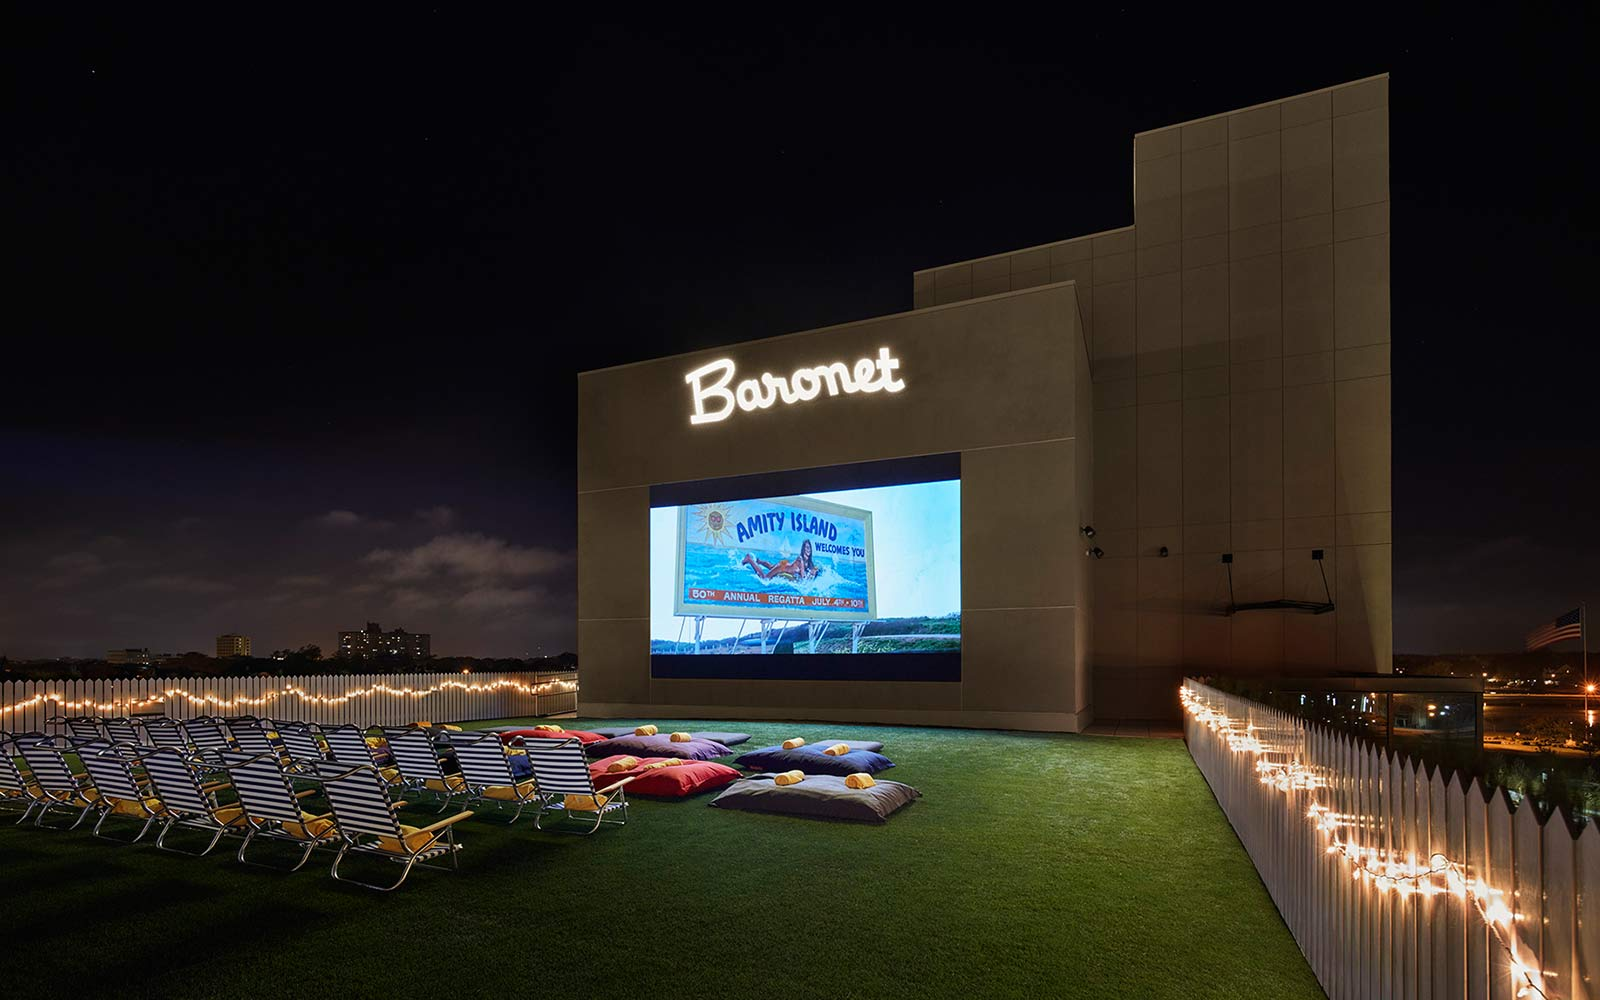 Movie screen under Baronet sign with seating in front.